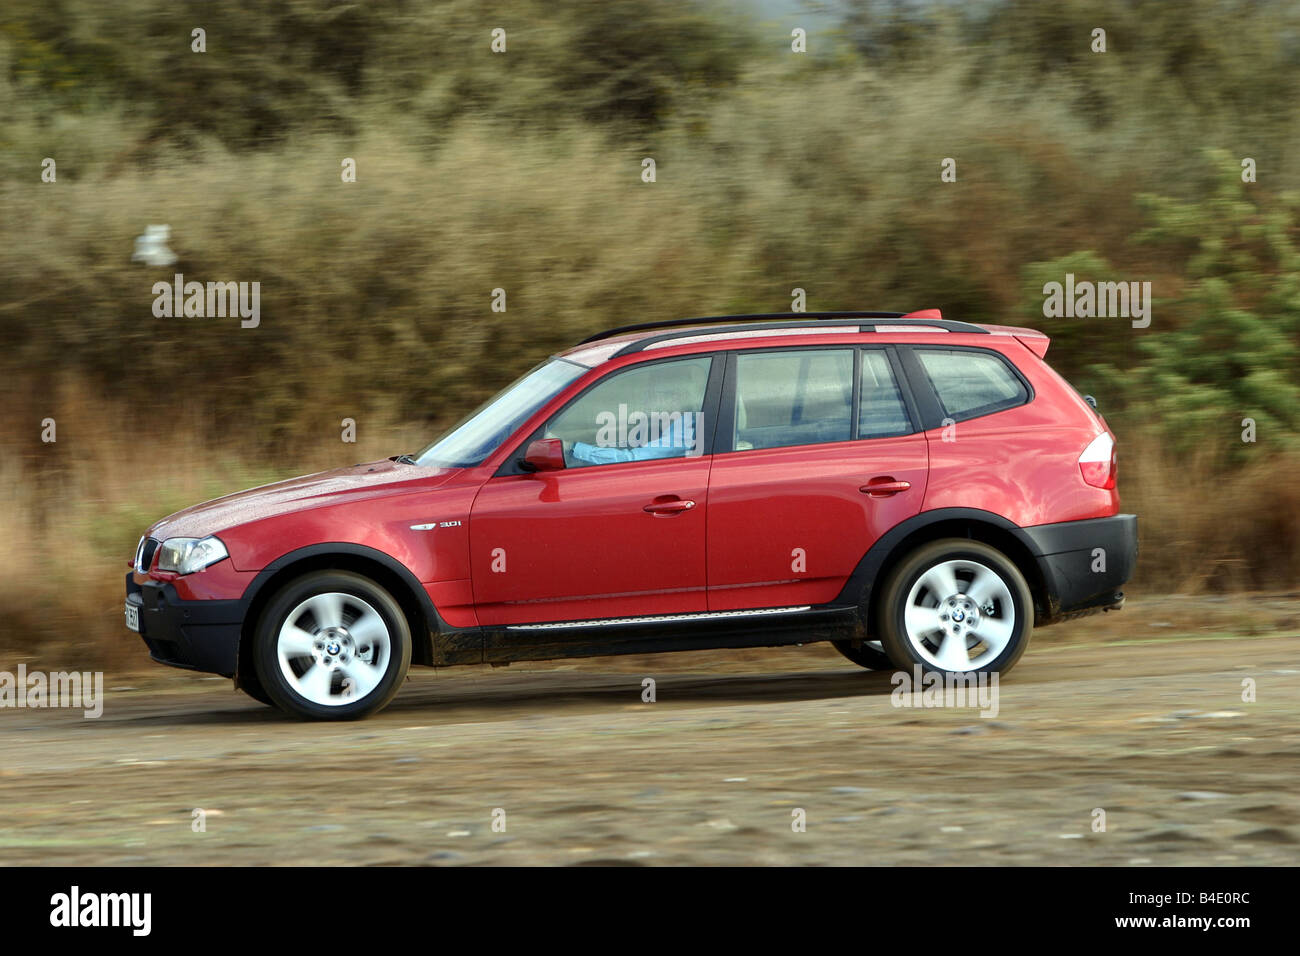 Car, BMW X3, cross country vehicle, model year 2003-, red, FGHDS, driving, side view, offroad - Stock Image